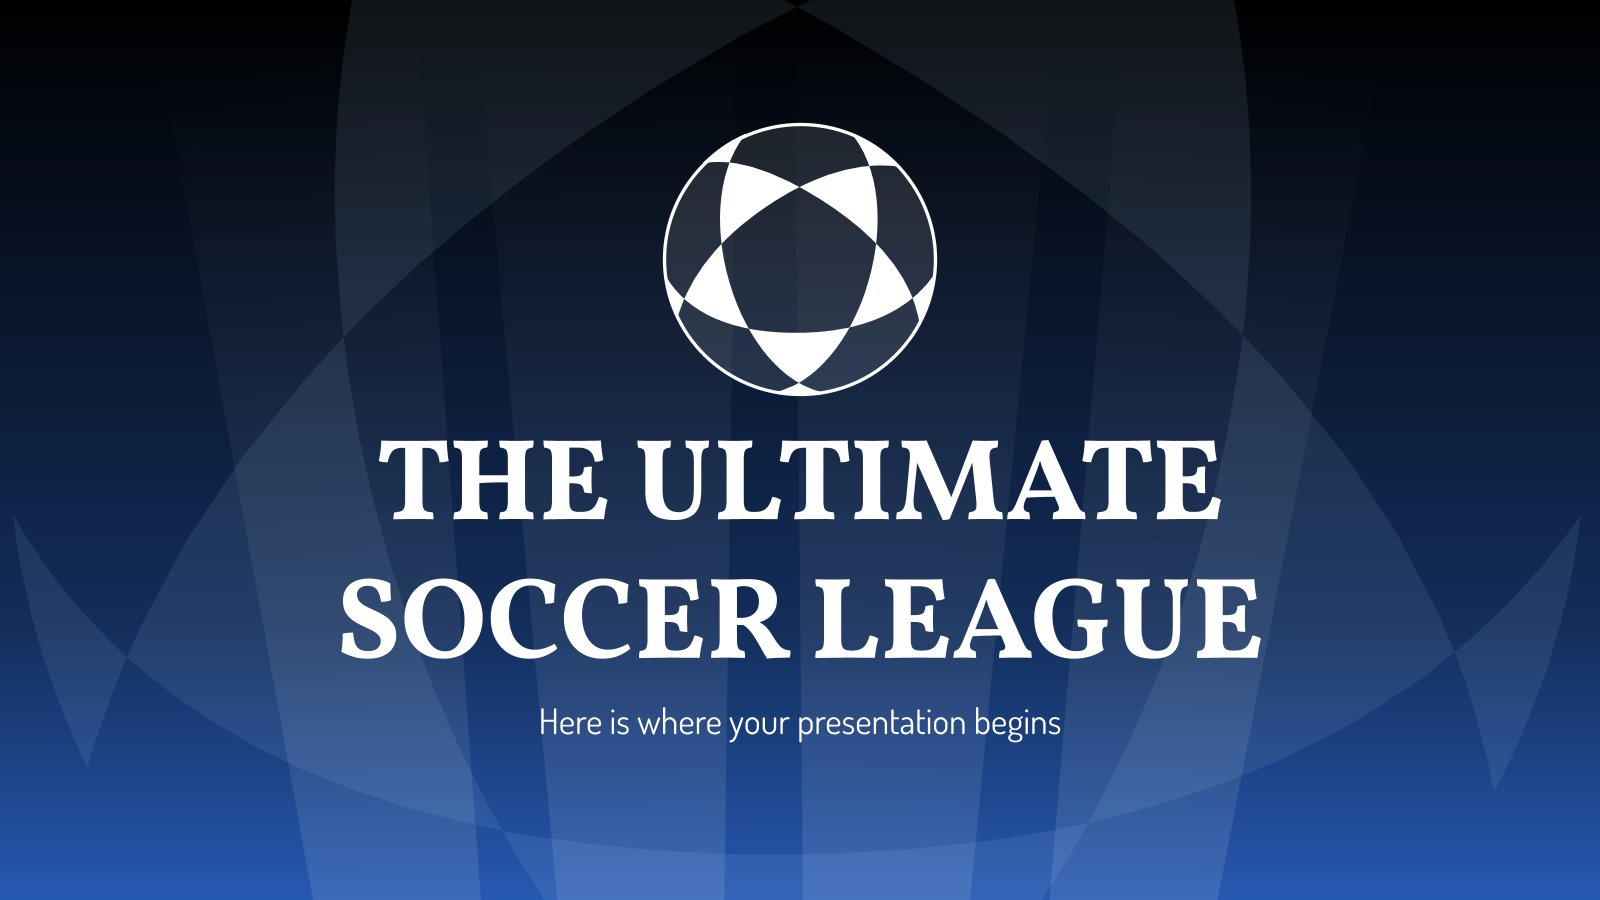 The Ultimate Soccer League presentation template